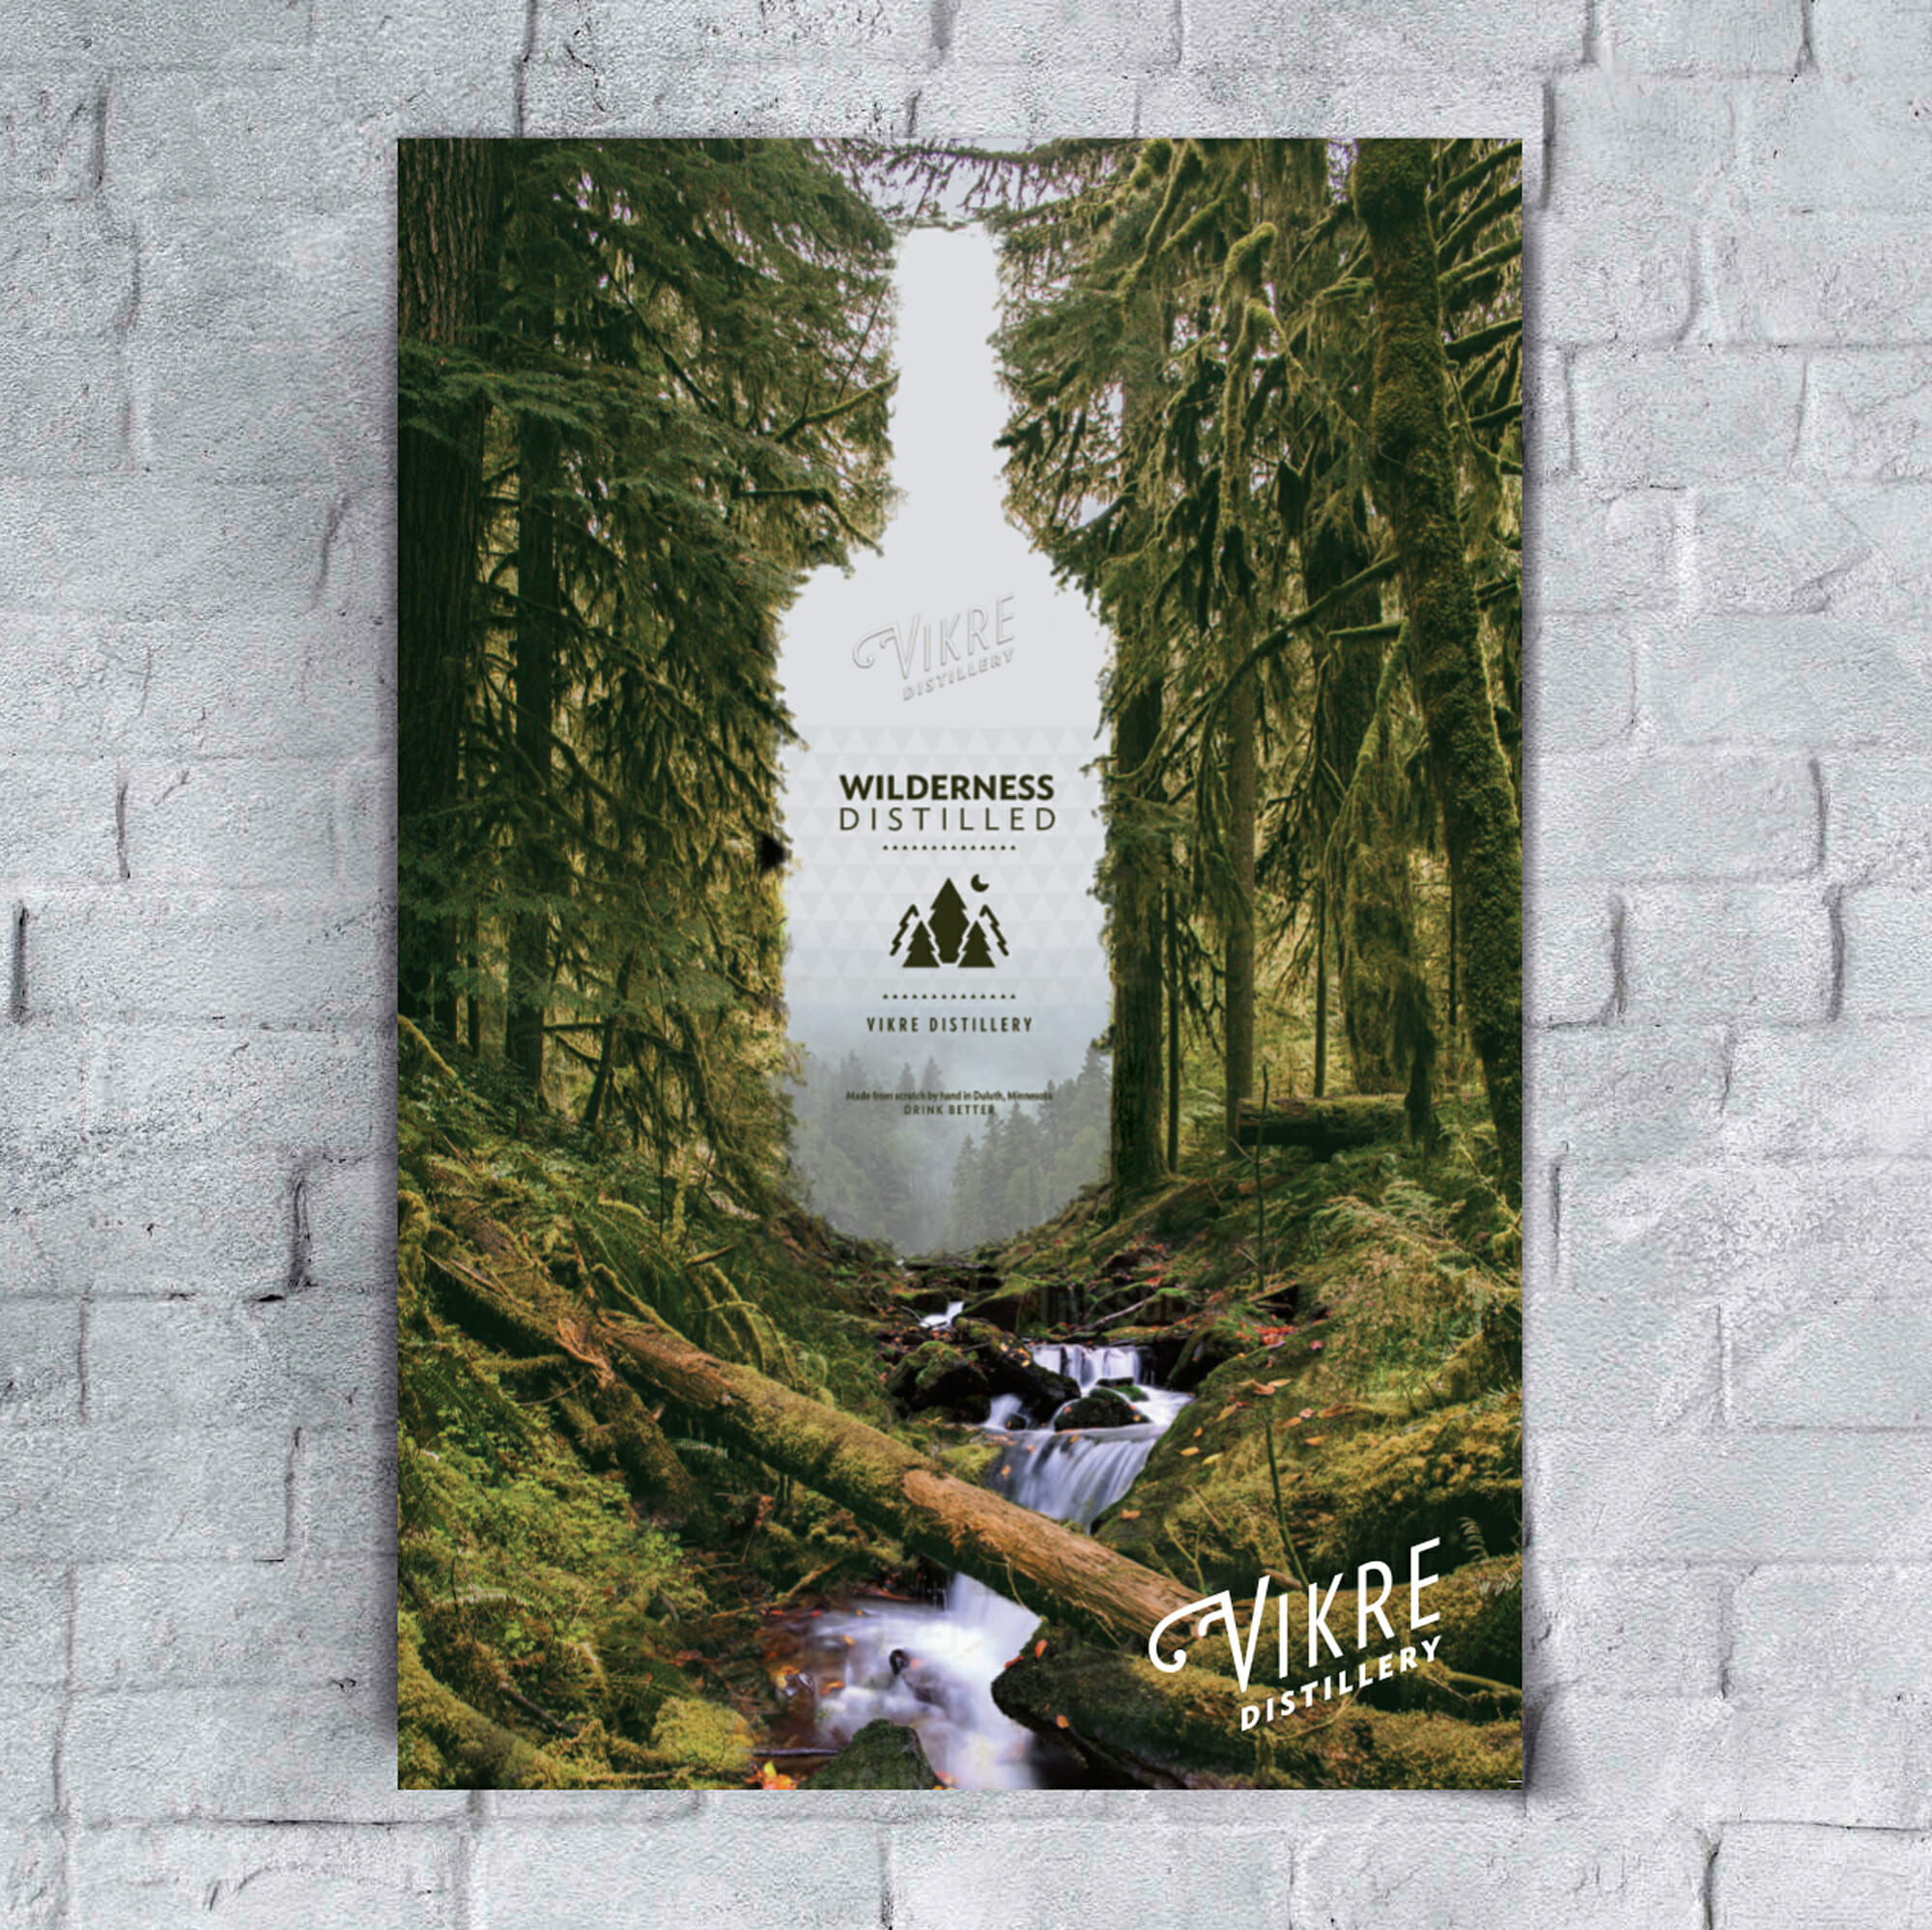 Vikre Distillery wilderness distilled poster, design by Šek Design Studio